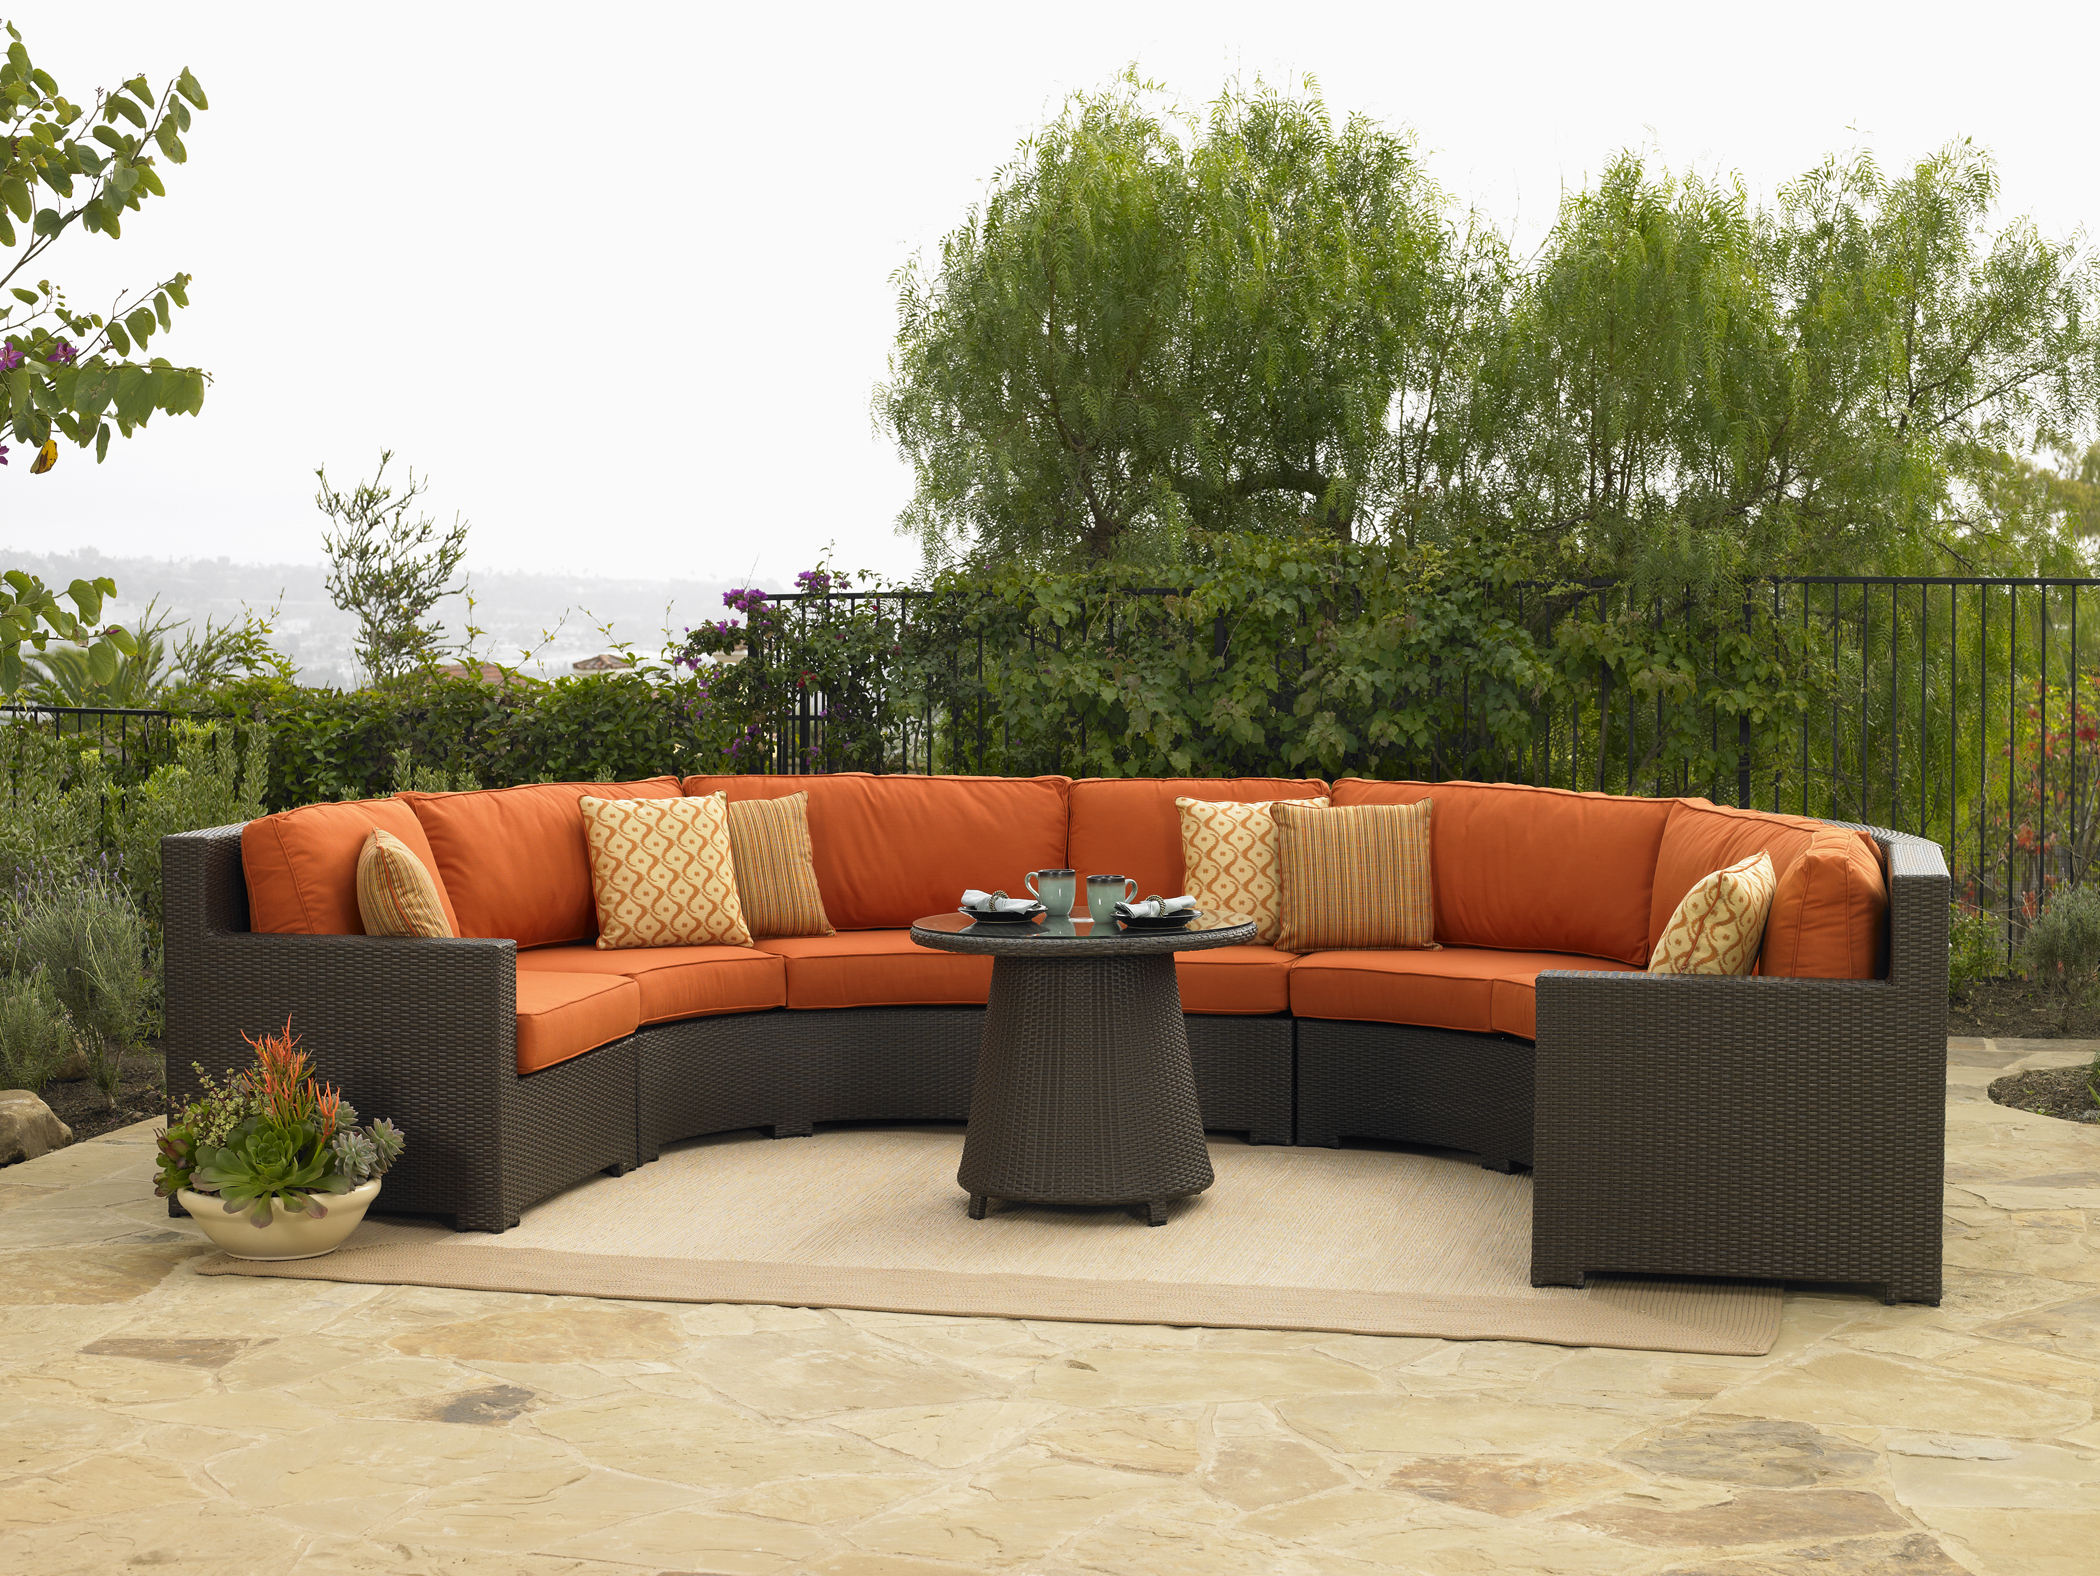 Top 4 things to consider before buying   summer furniture